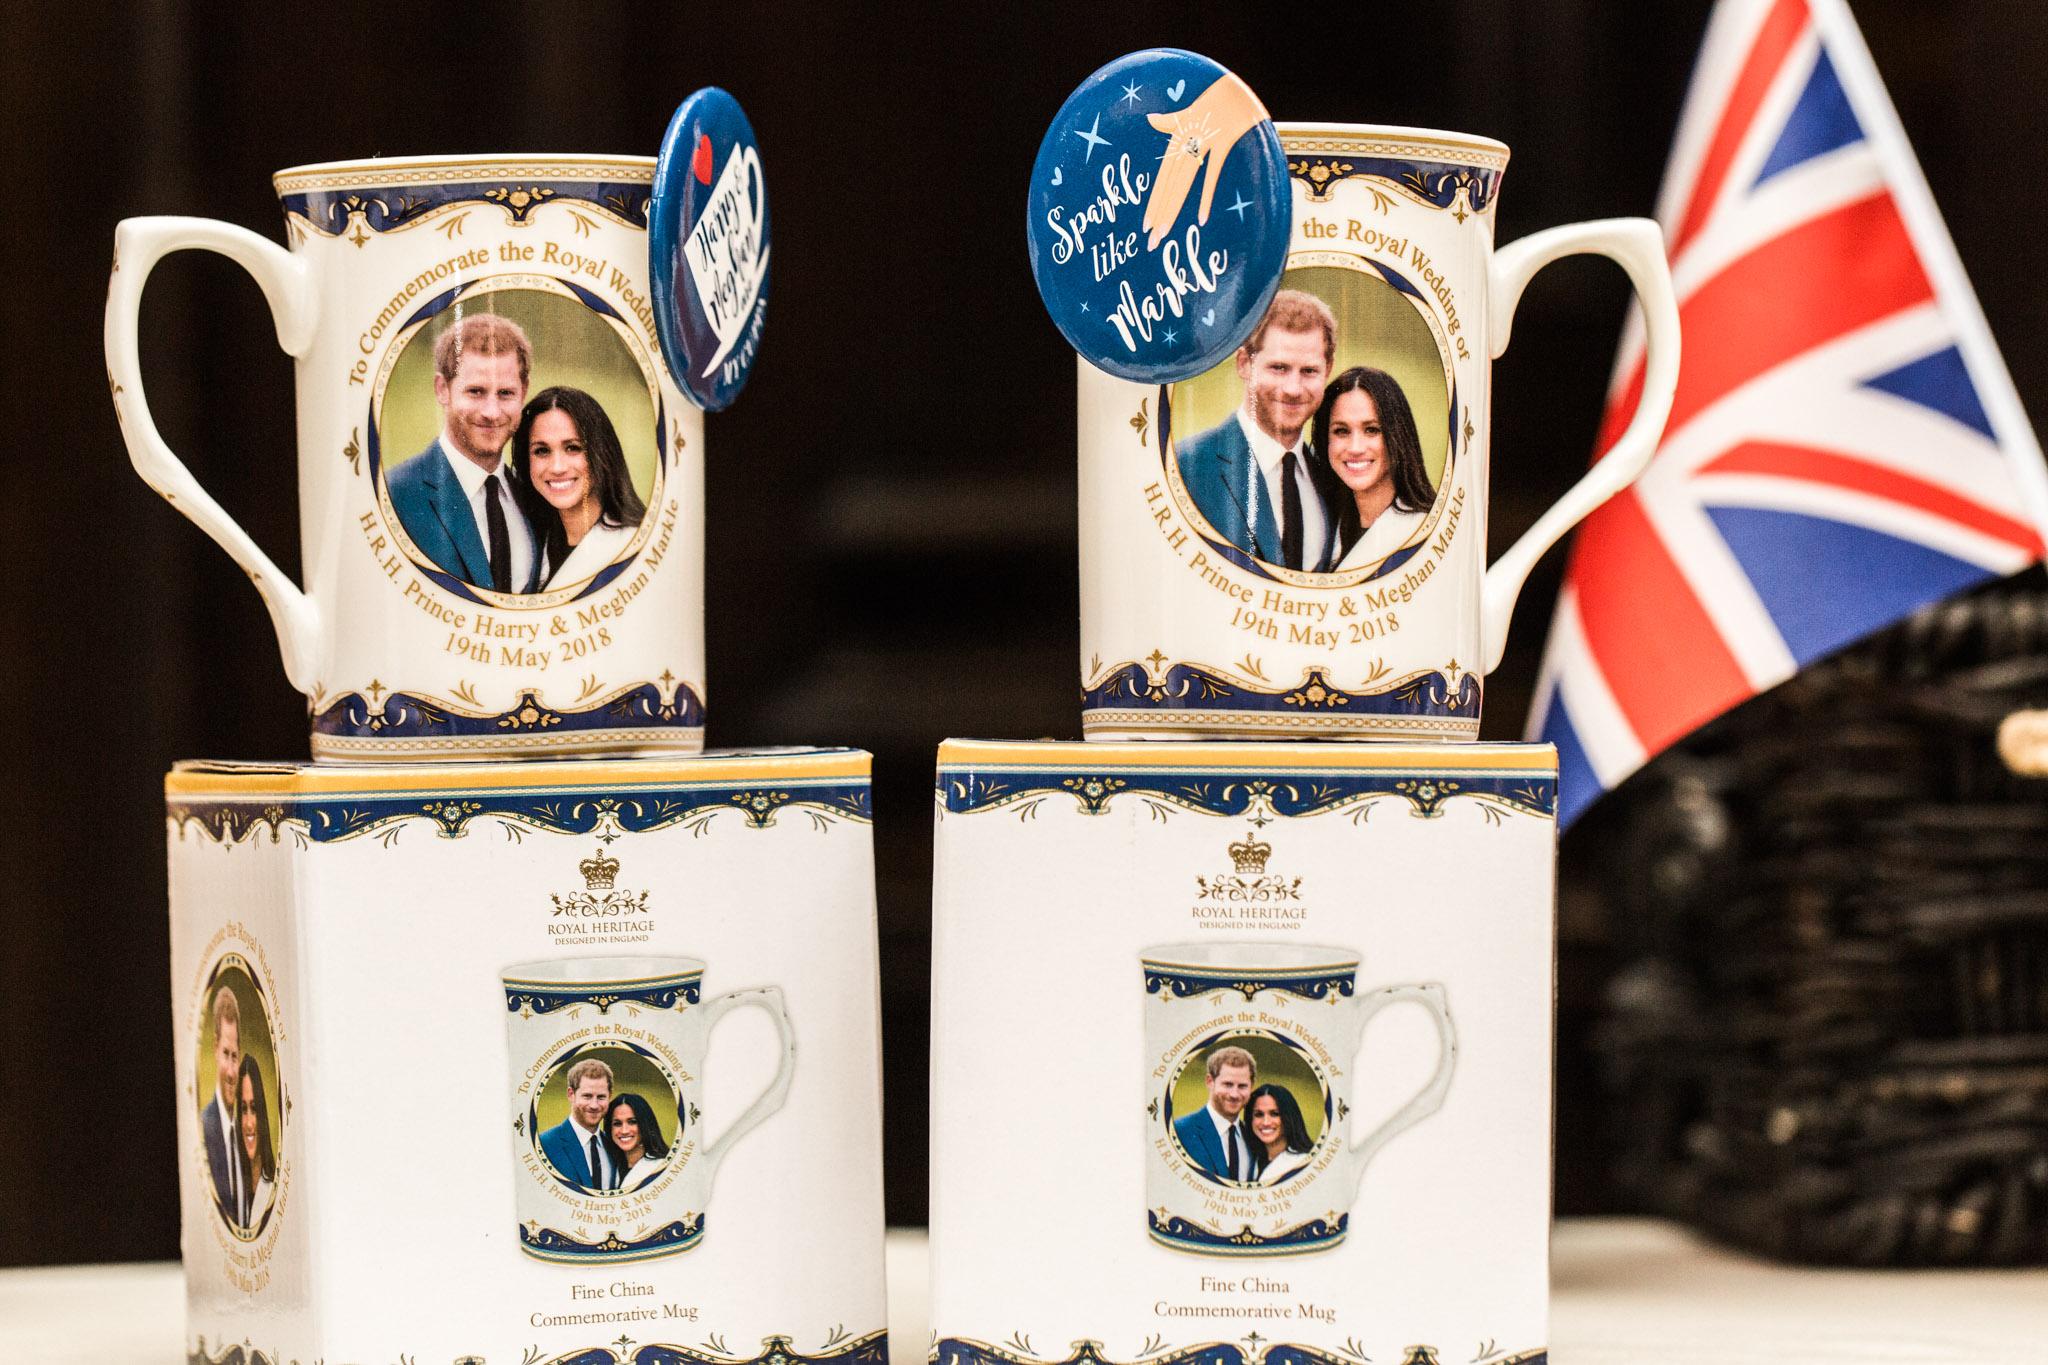 Pittsburgh Wedding Planner - Royal Wedding Watch Party - Royal Wedding Harry Meghan Commemorative Mugs